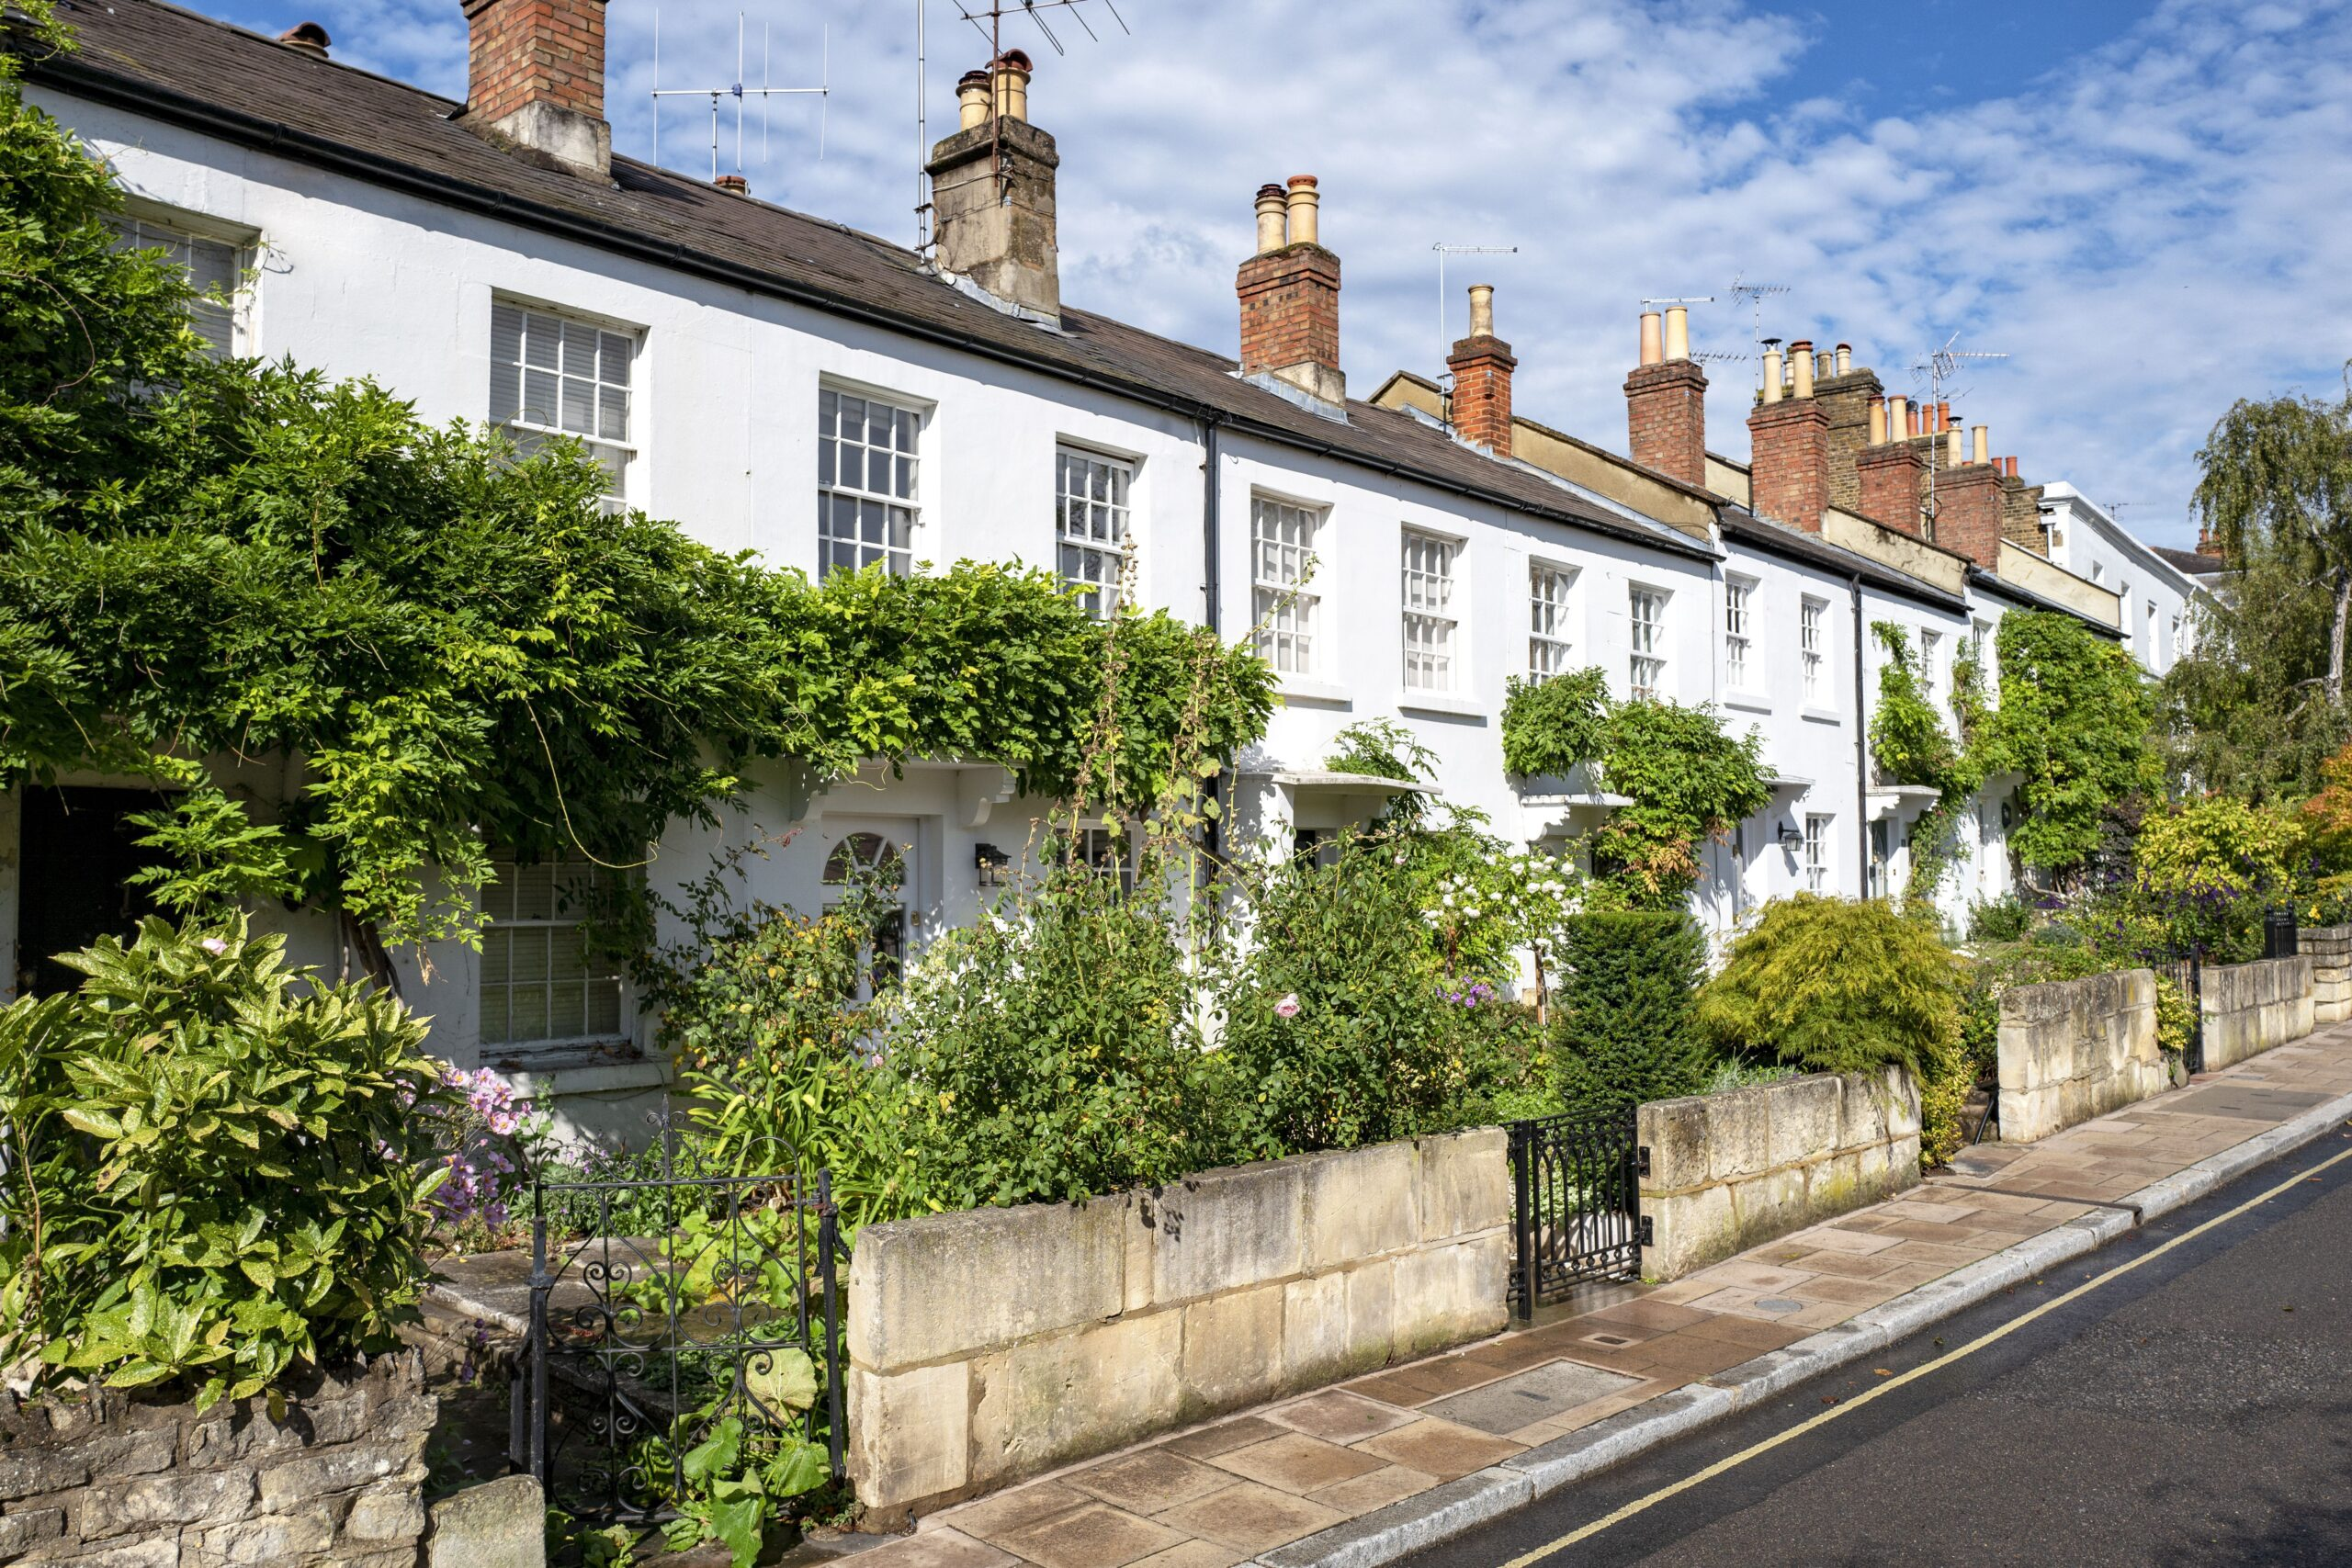 Typical English row of terraced cottages